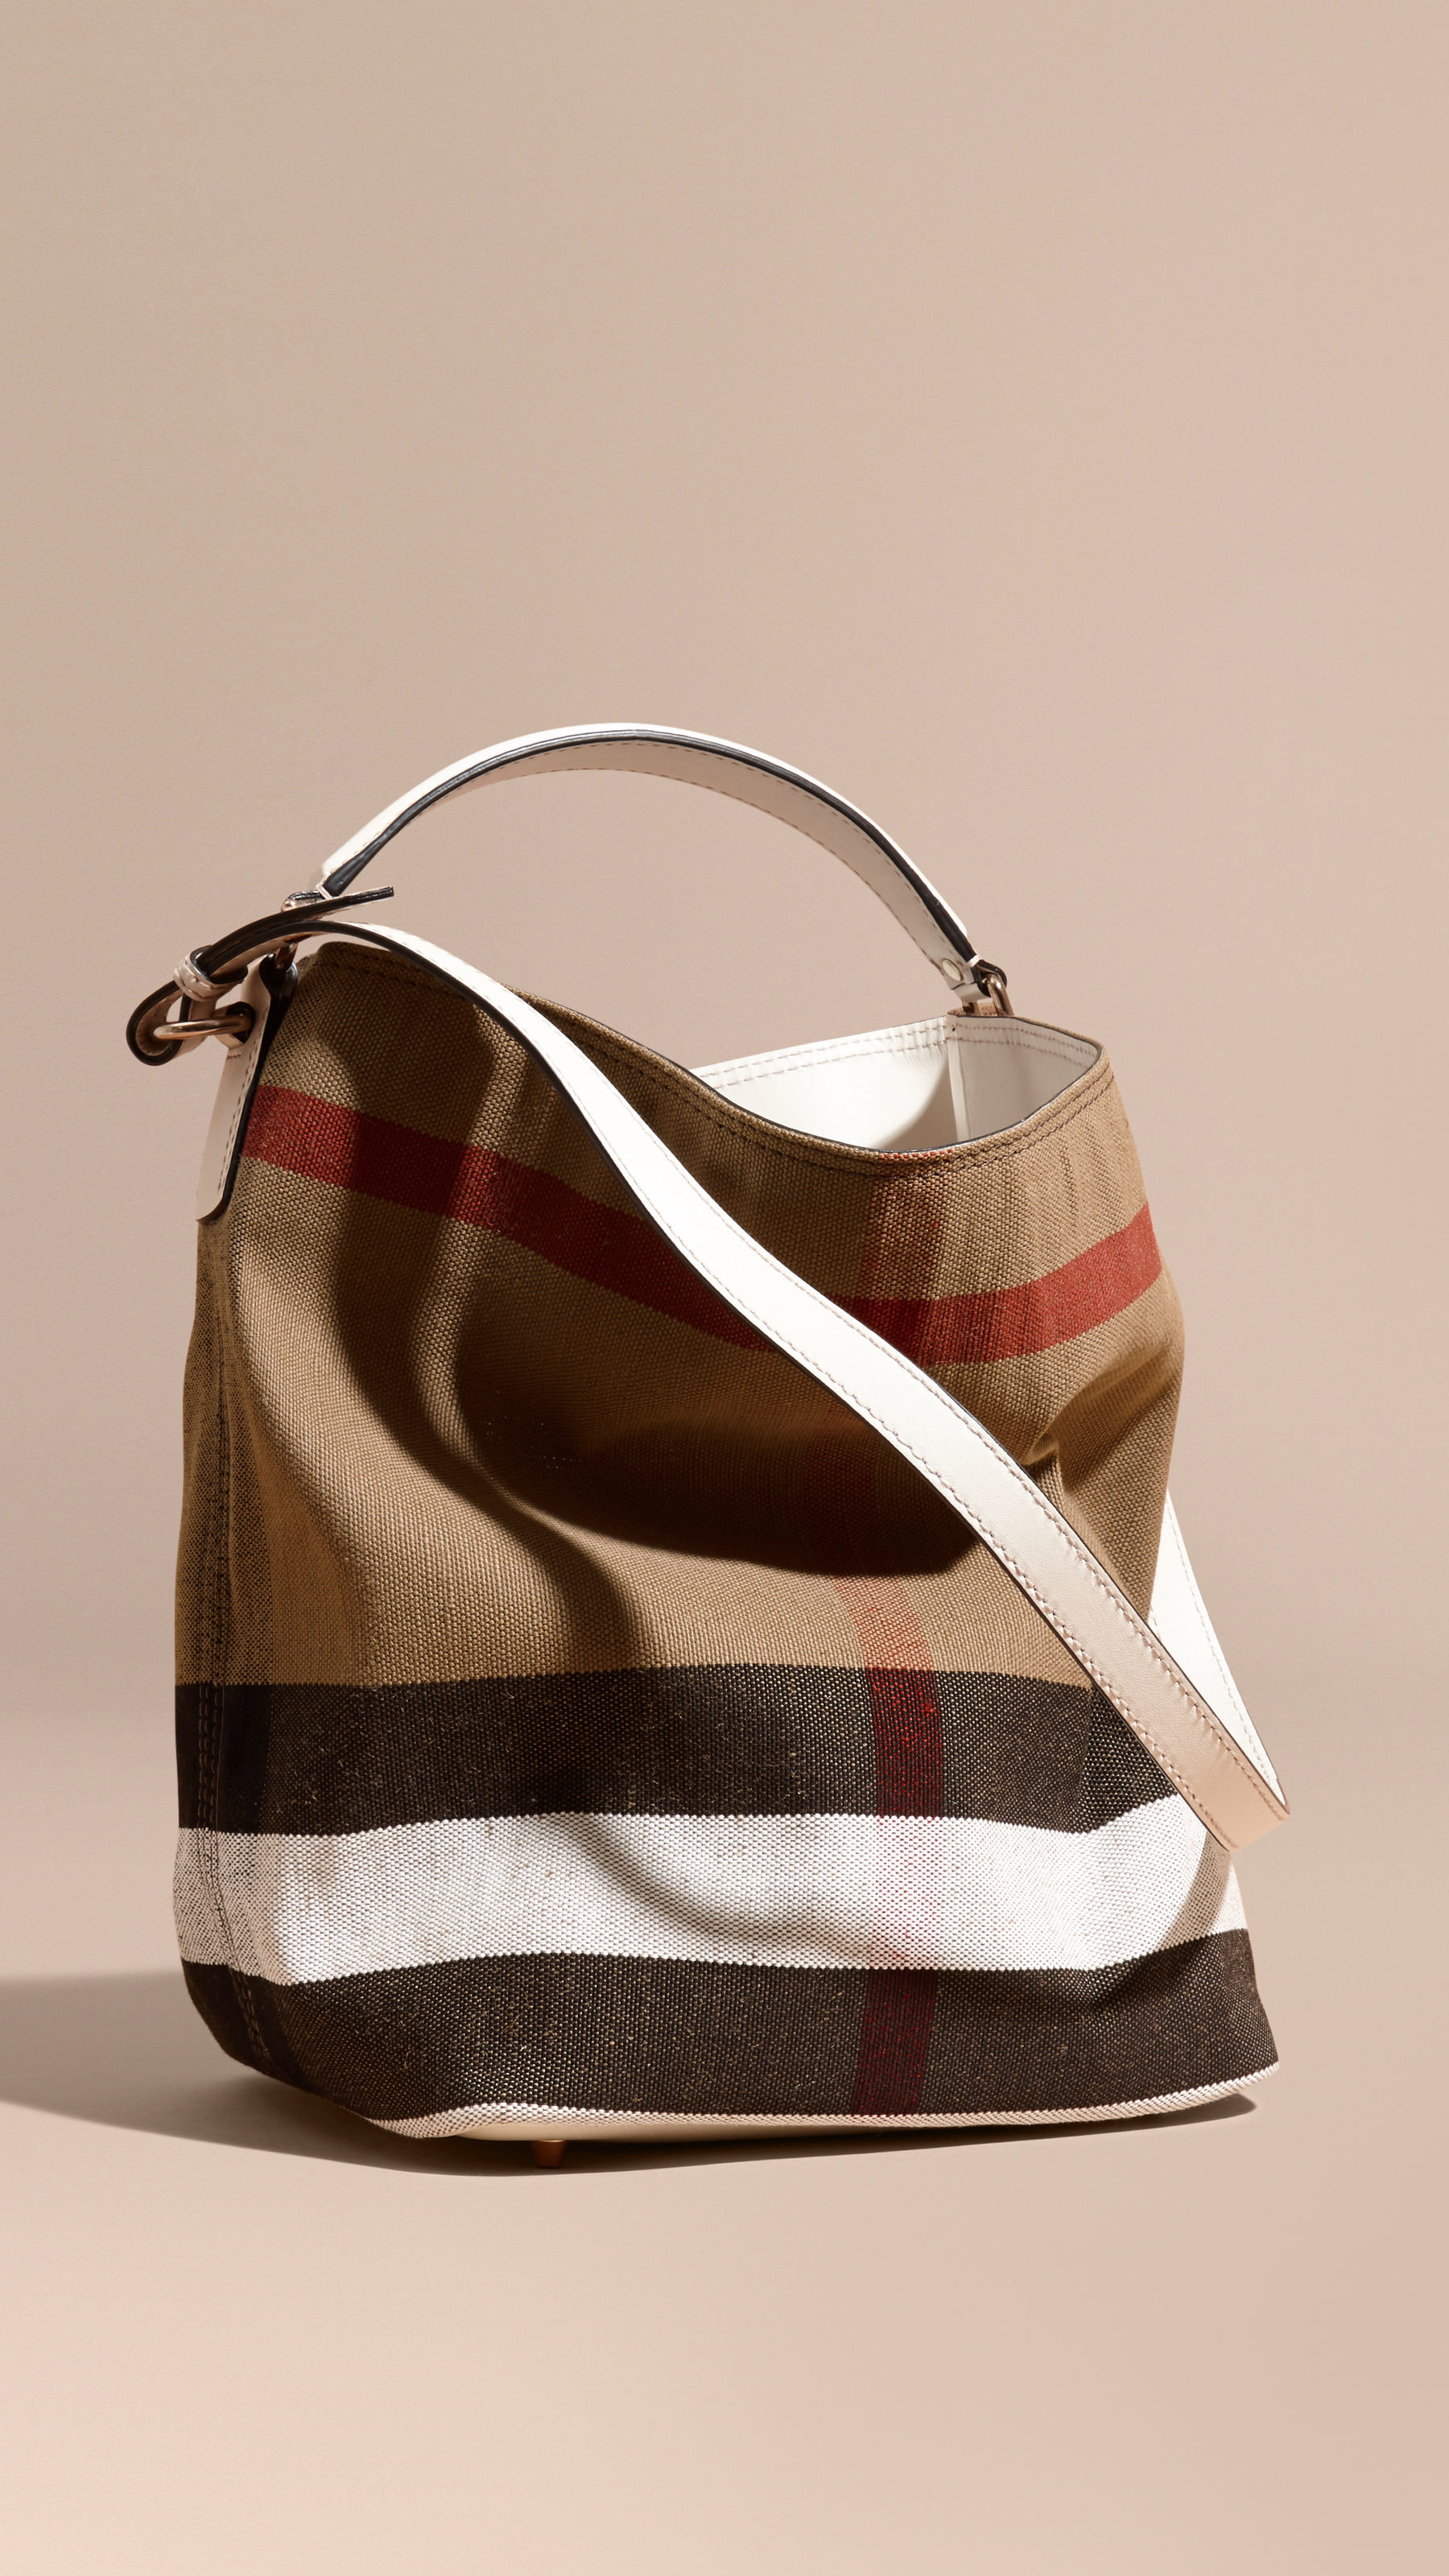 Burberry The Medium Ashby In Canvas Check And Leather . cfe52ed287a9a